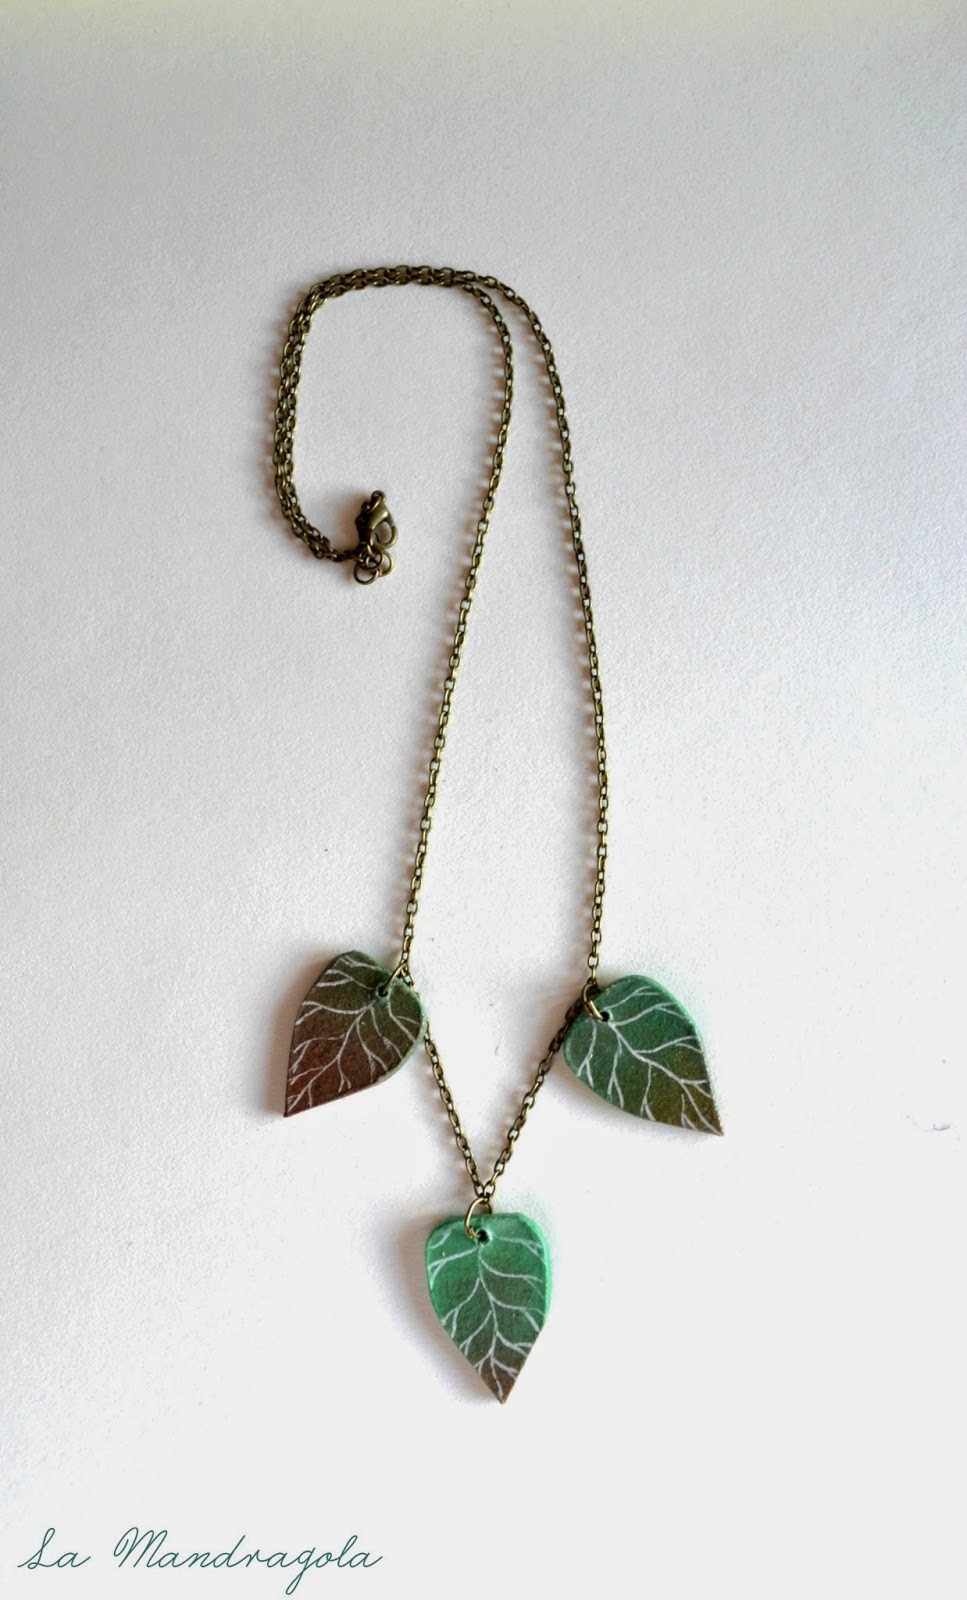 leaves-autumn-necklace-la mandragola-handmade-finnboard-etsy-green